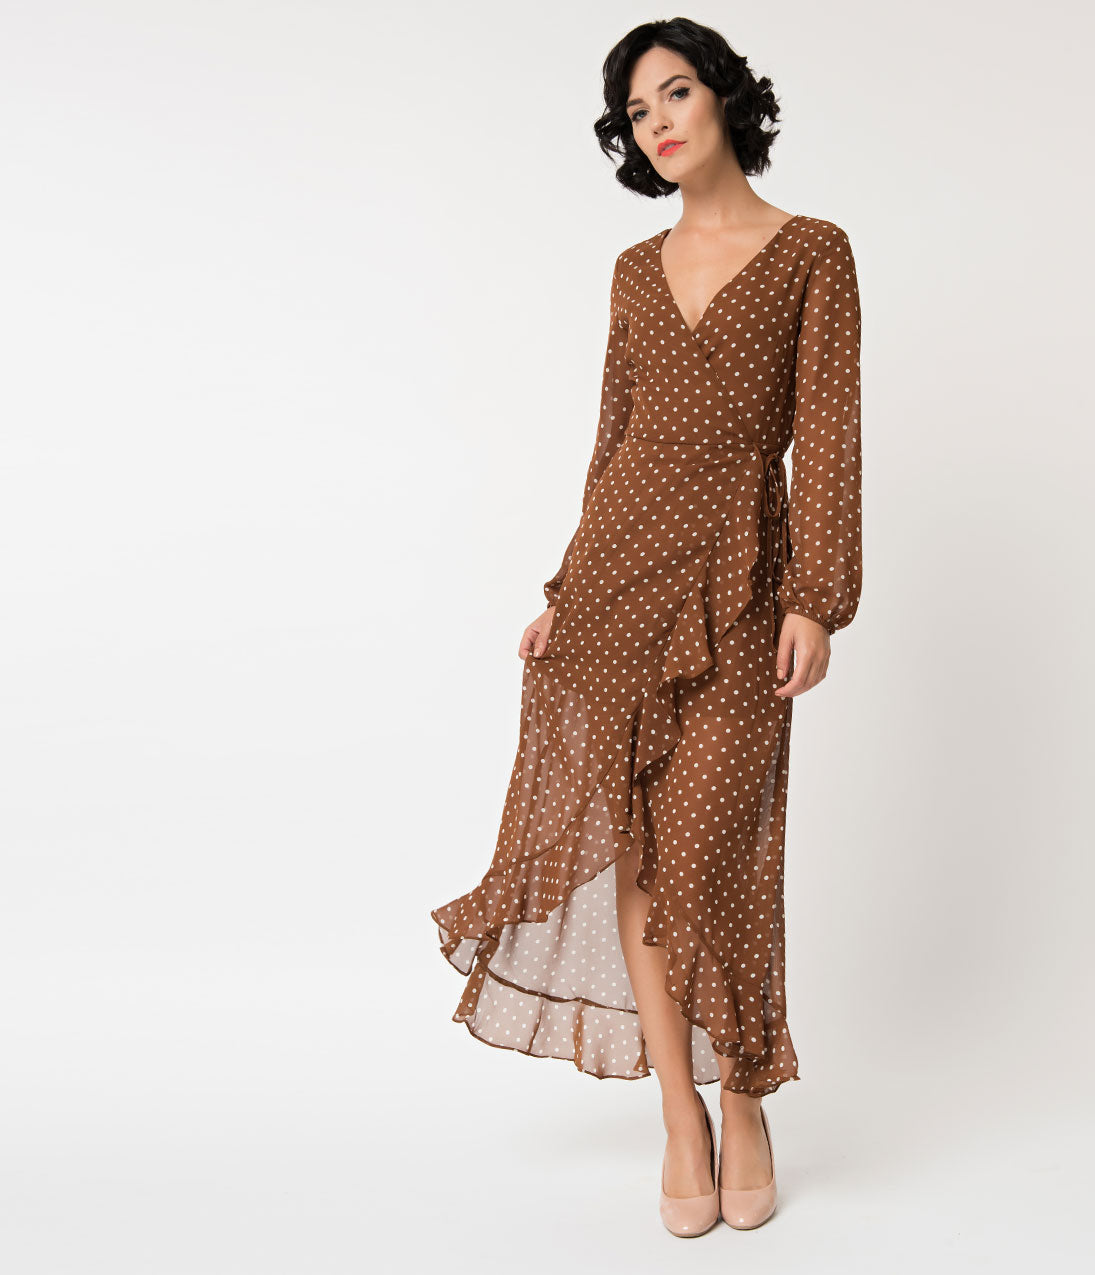 Polka Dot Dresses: 20s, 30s, 40s, 50s, 60s Brick  White Polka Dot High Low Wrap Sleeved Wrap Dress $62.00 AT vintagedancer.com